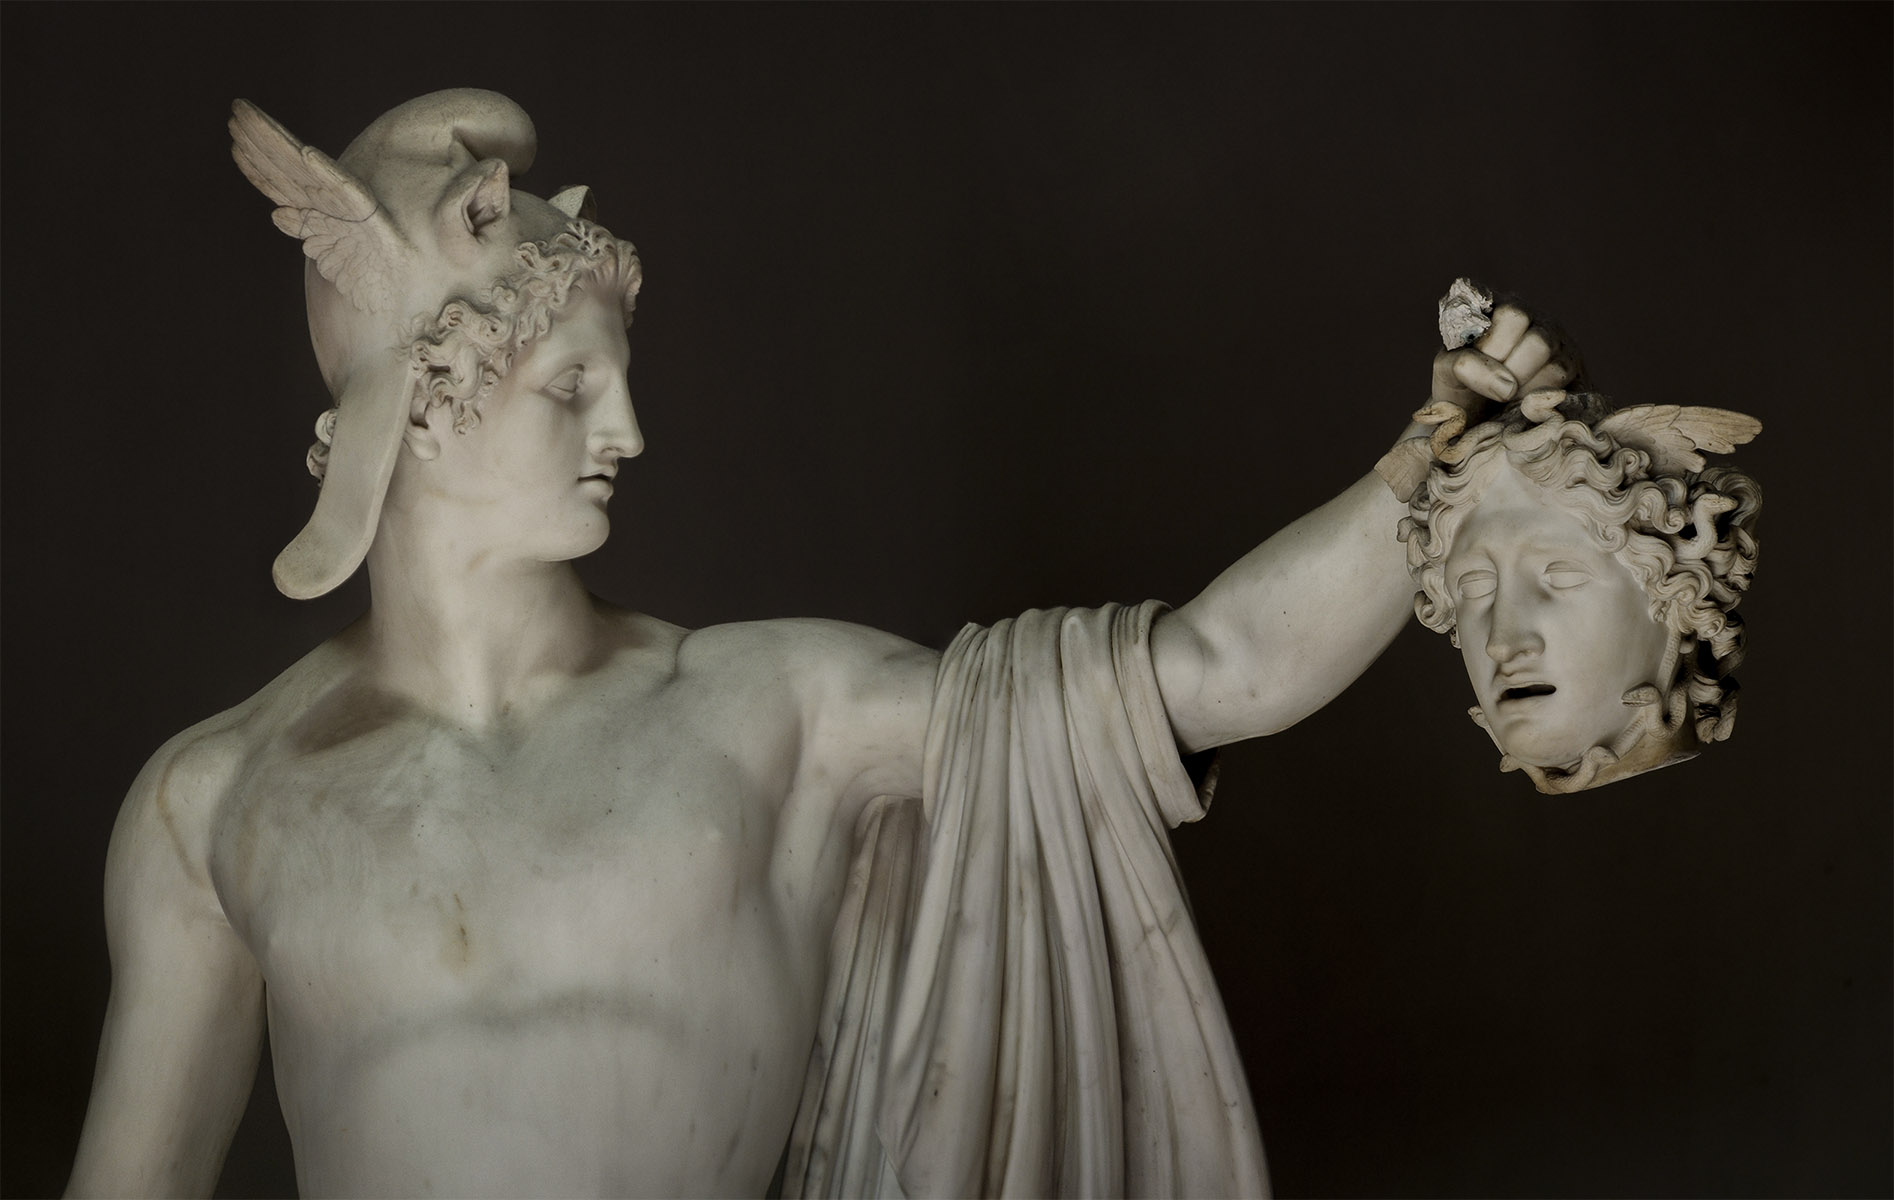 Perseus with the head of Medusa. Detail. Antonio Canova (1757—1822). Marble. 1801. Inv. No. 969. Rome, Vatican Museums, Pius-Clementine Museum, Octagonal Court, Cabinet of Canova (Perseus), 3